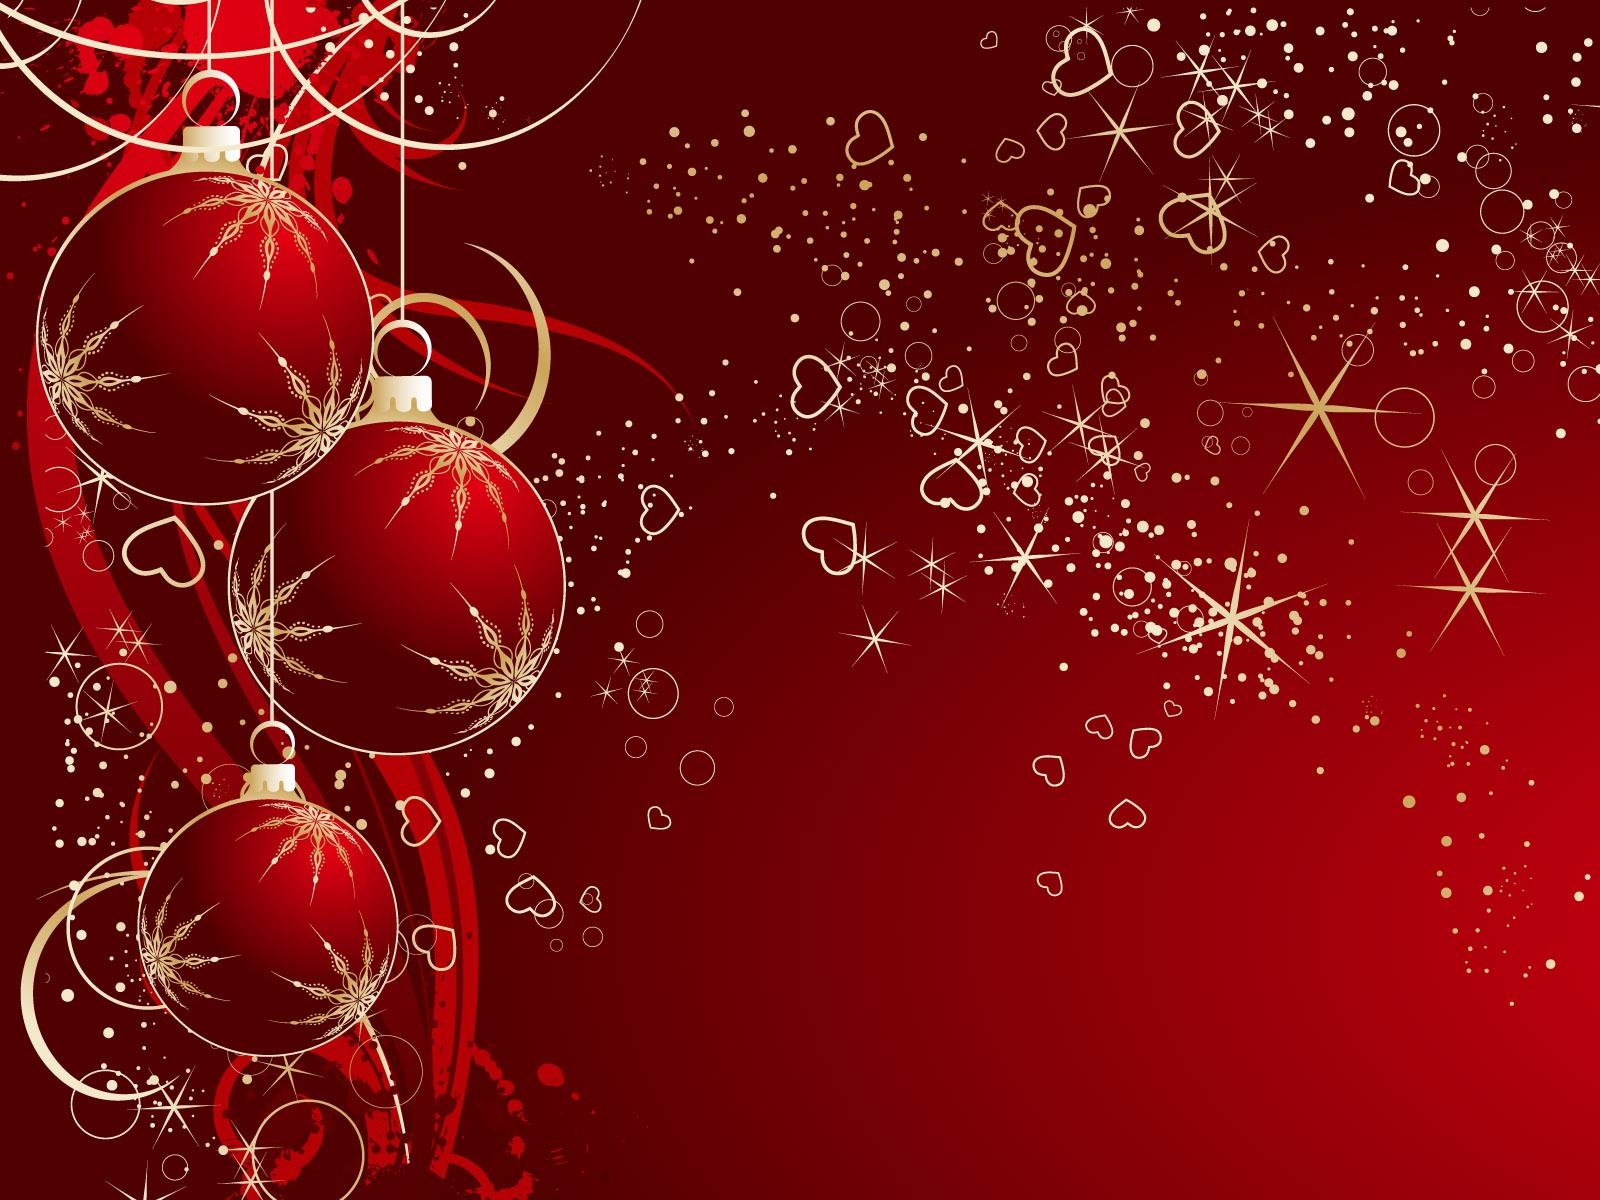 Christmas wallpapers harry styles 2013 - Anime merry christmas wallpaper ...